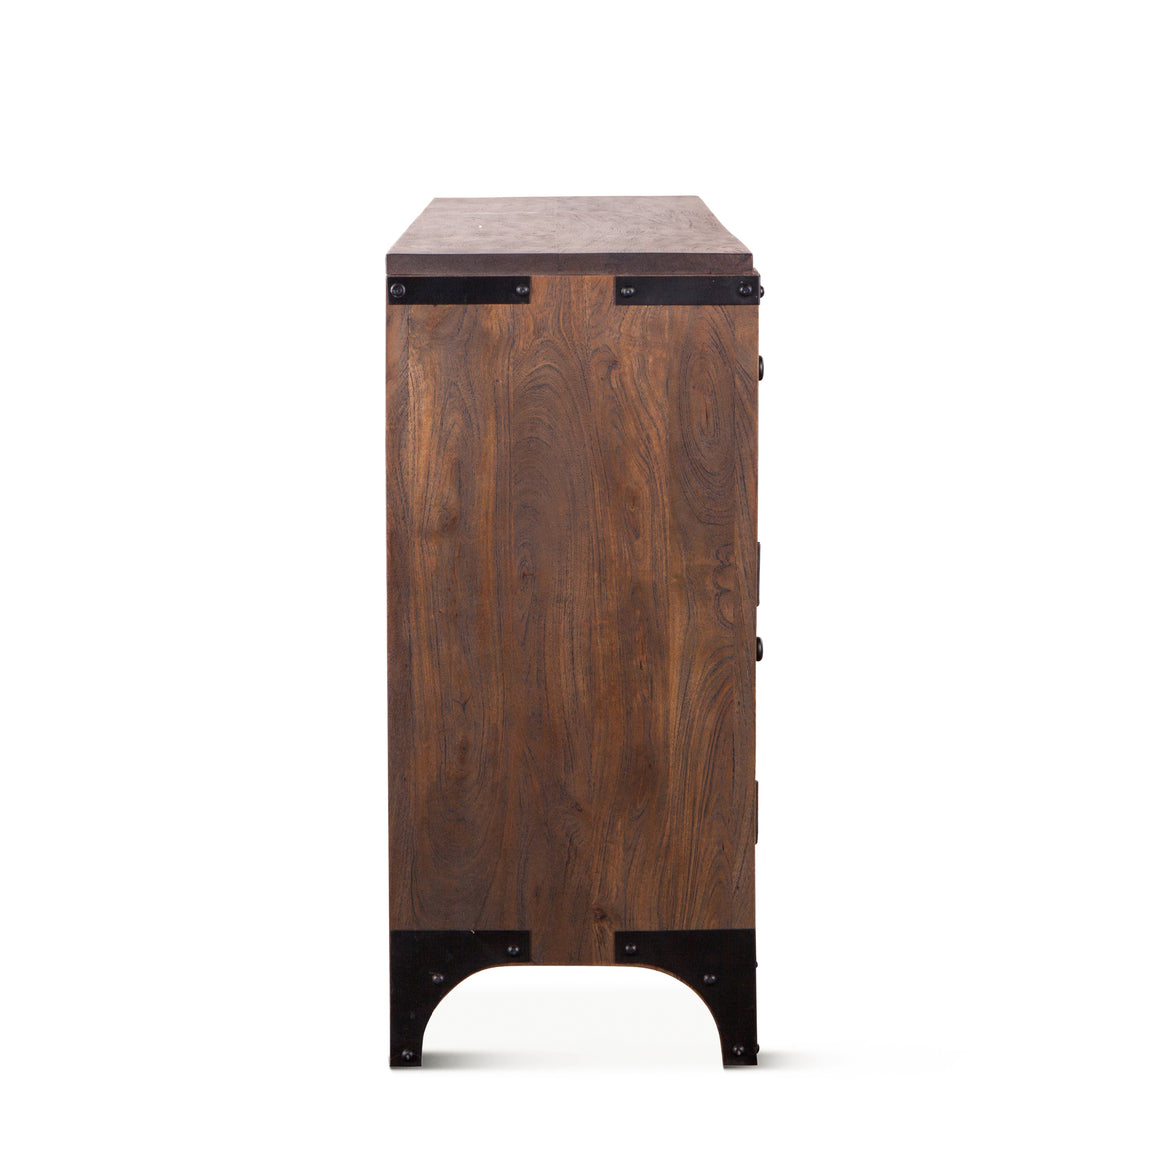 Chatham Downs Teak Sideboard